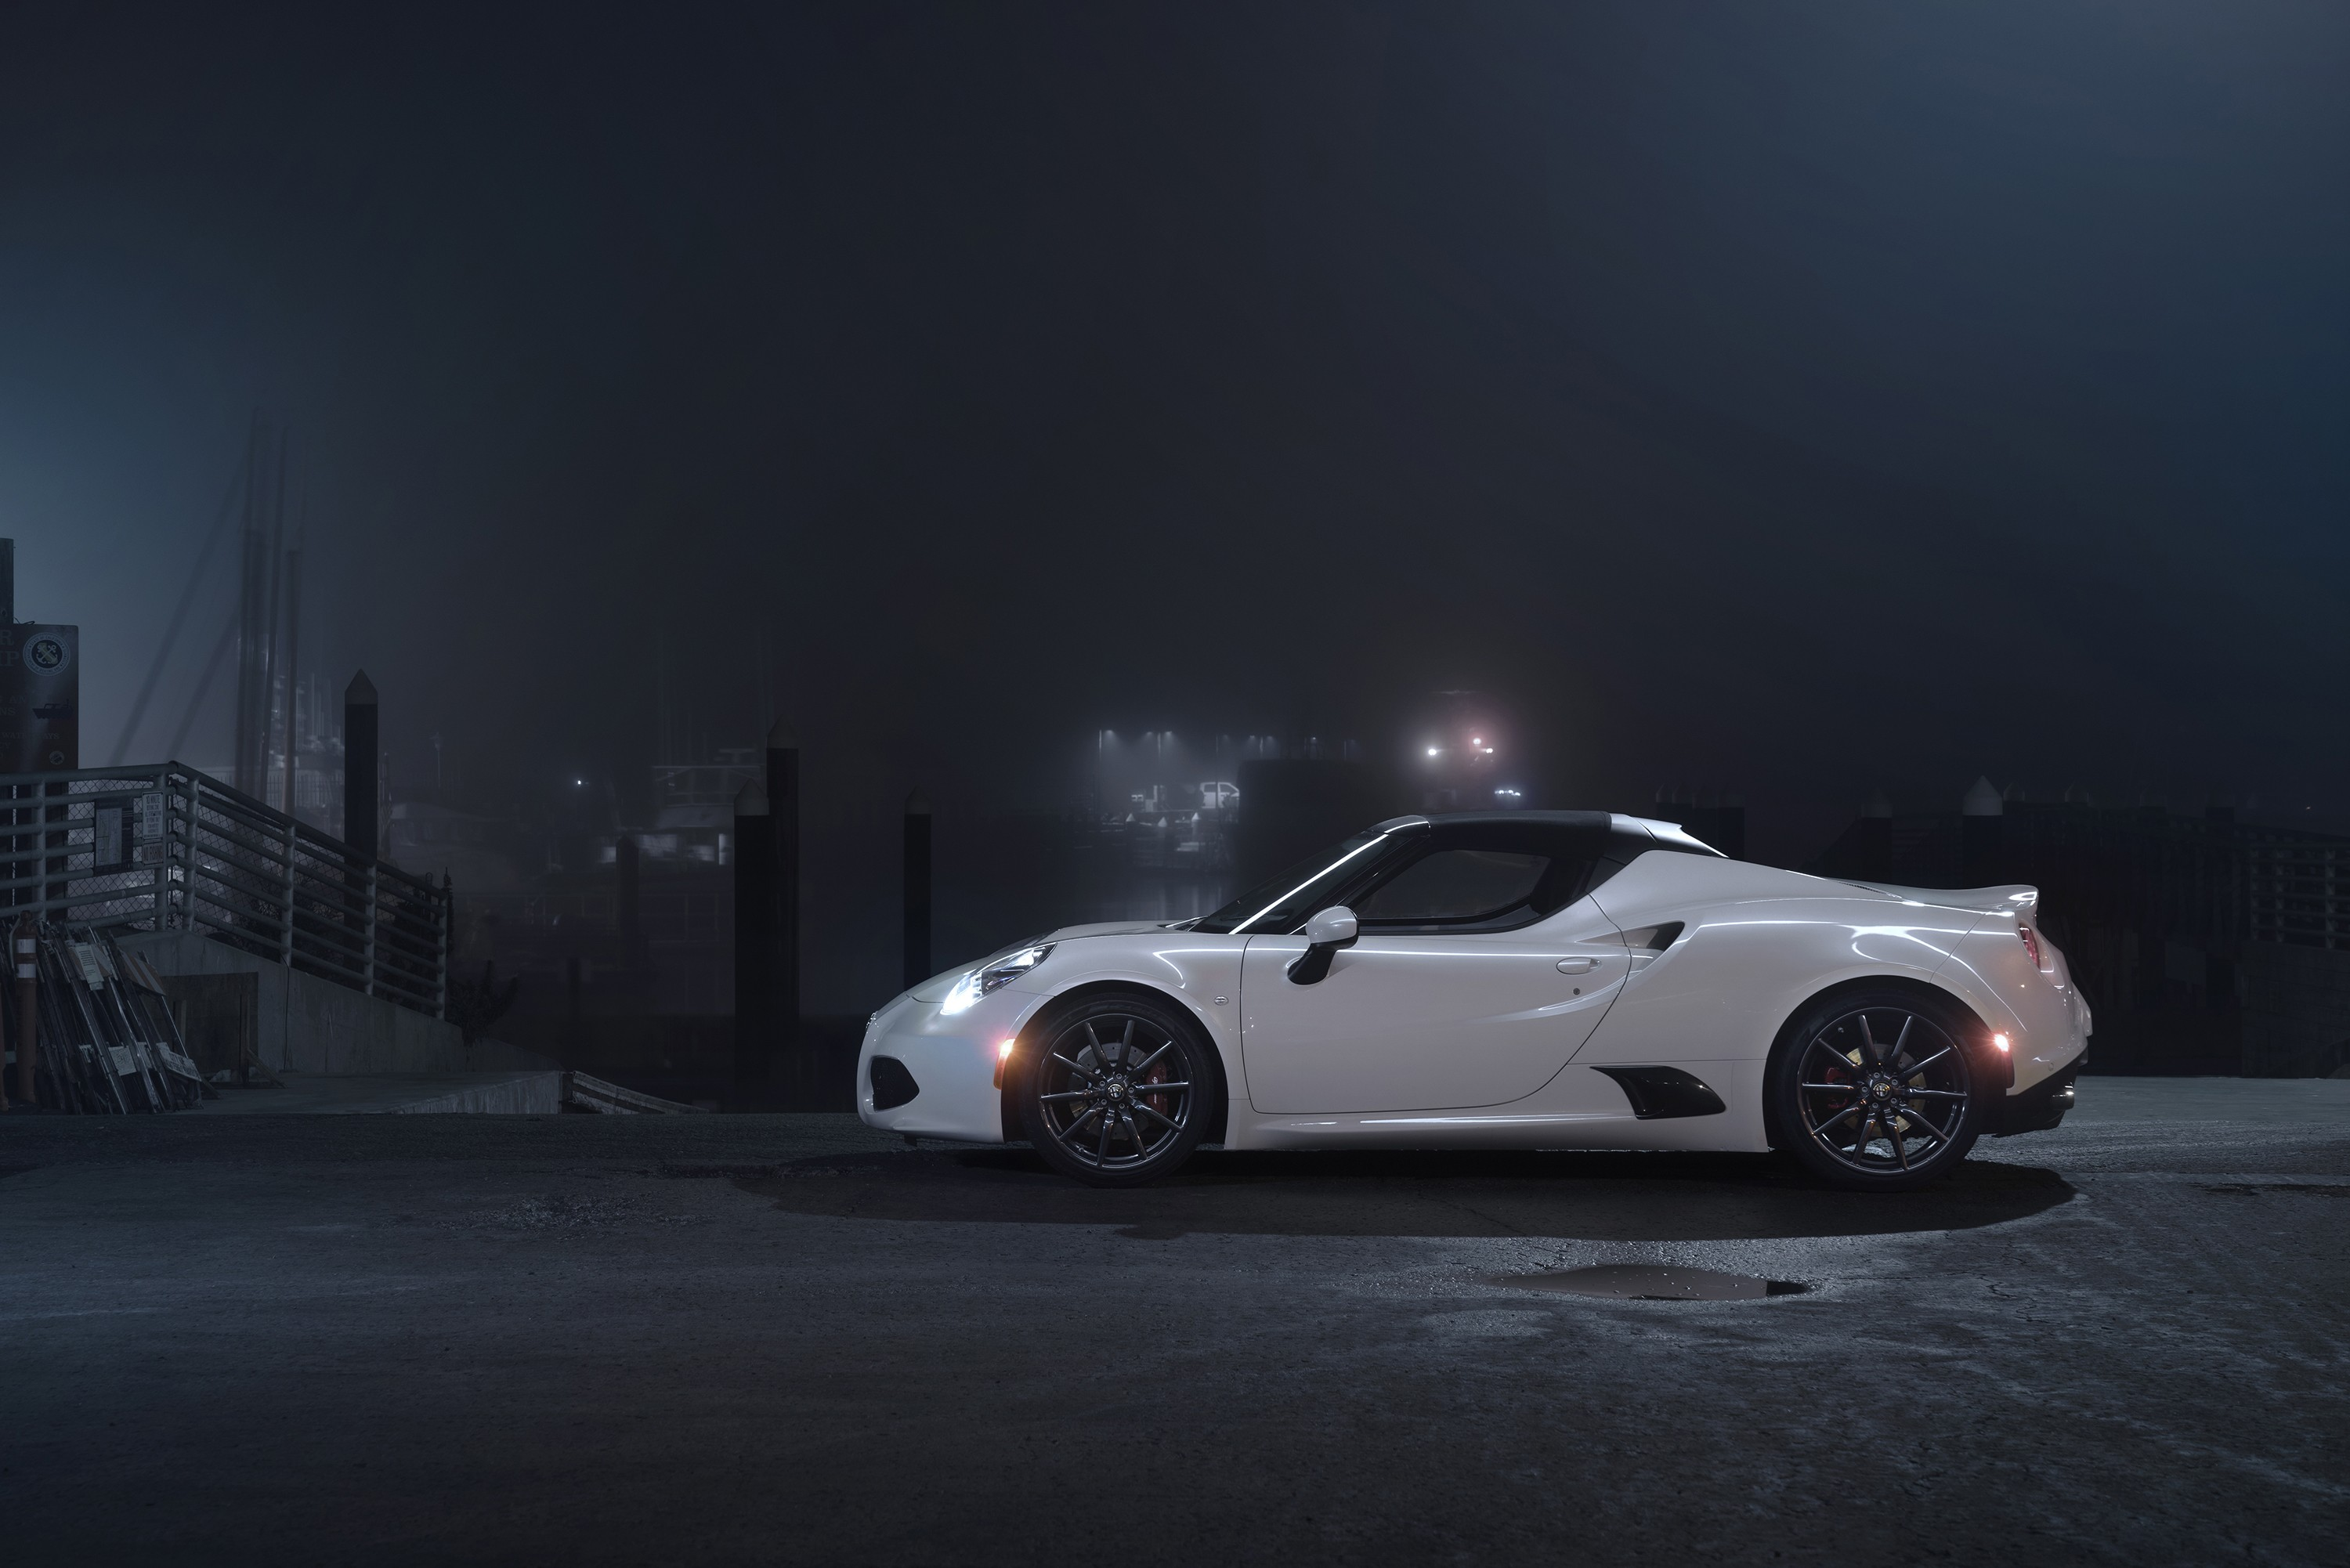 Wallpaper Alfa Romeo 4c Coupe Sportcar White Cars